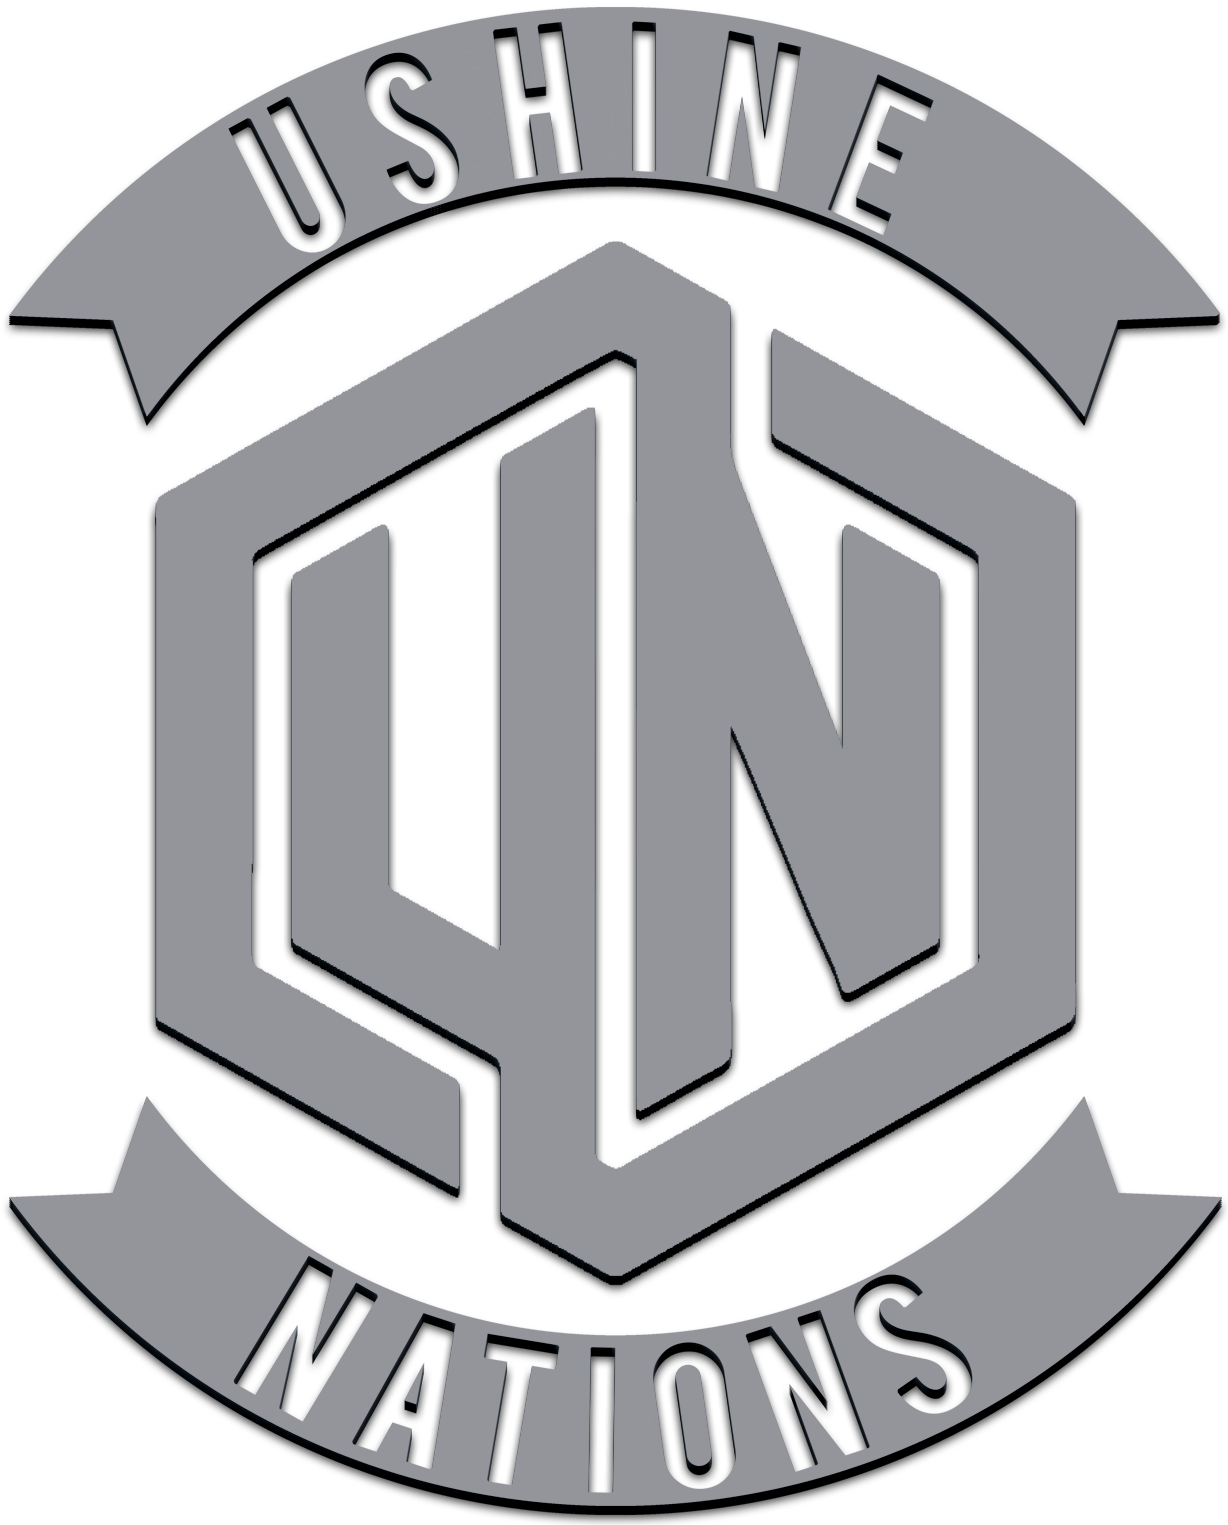 Legal services | Ushine Nations